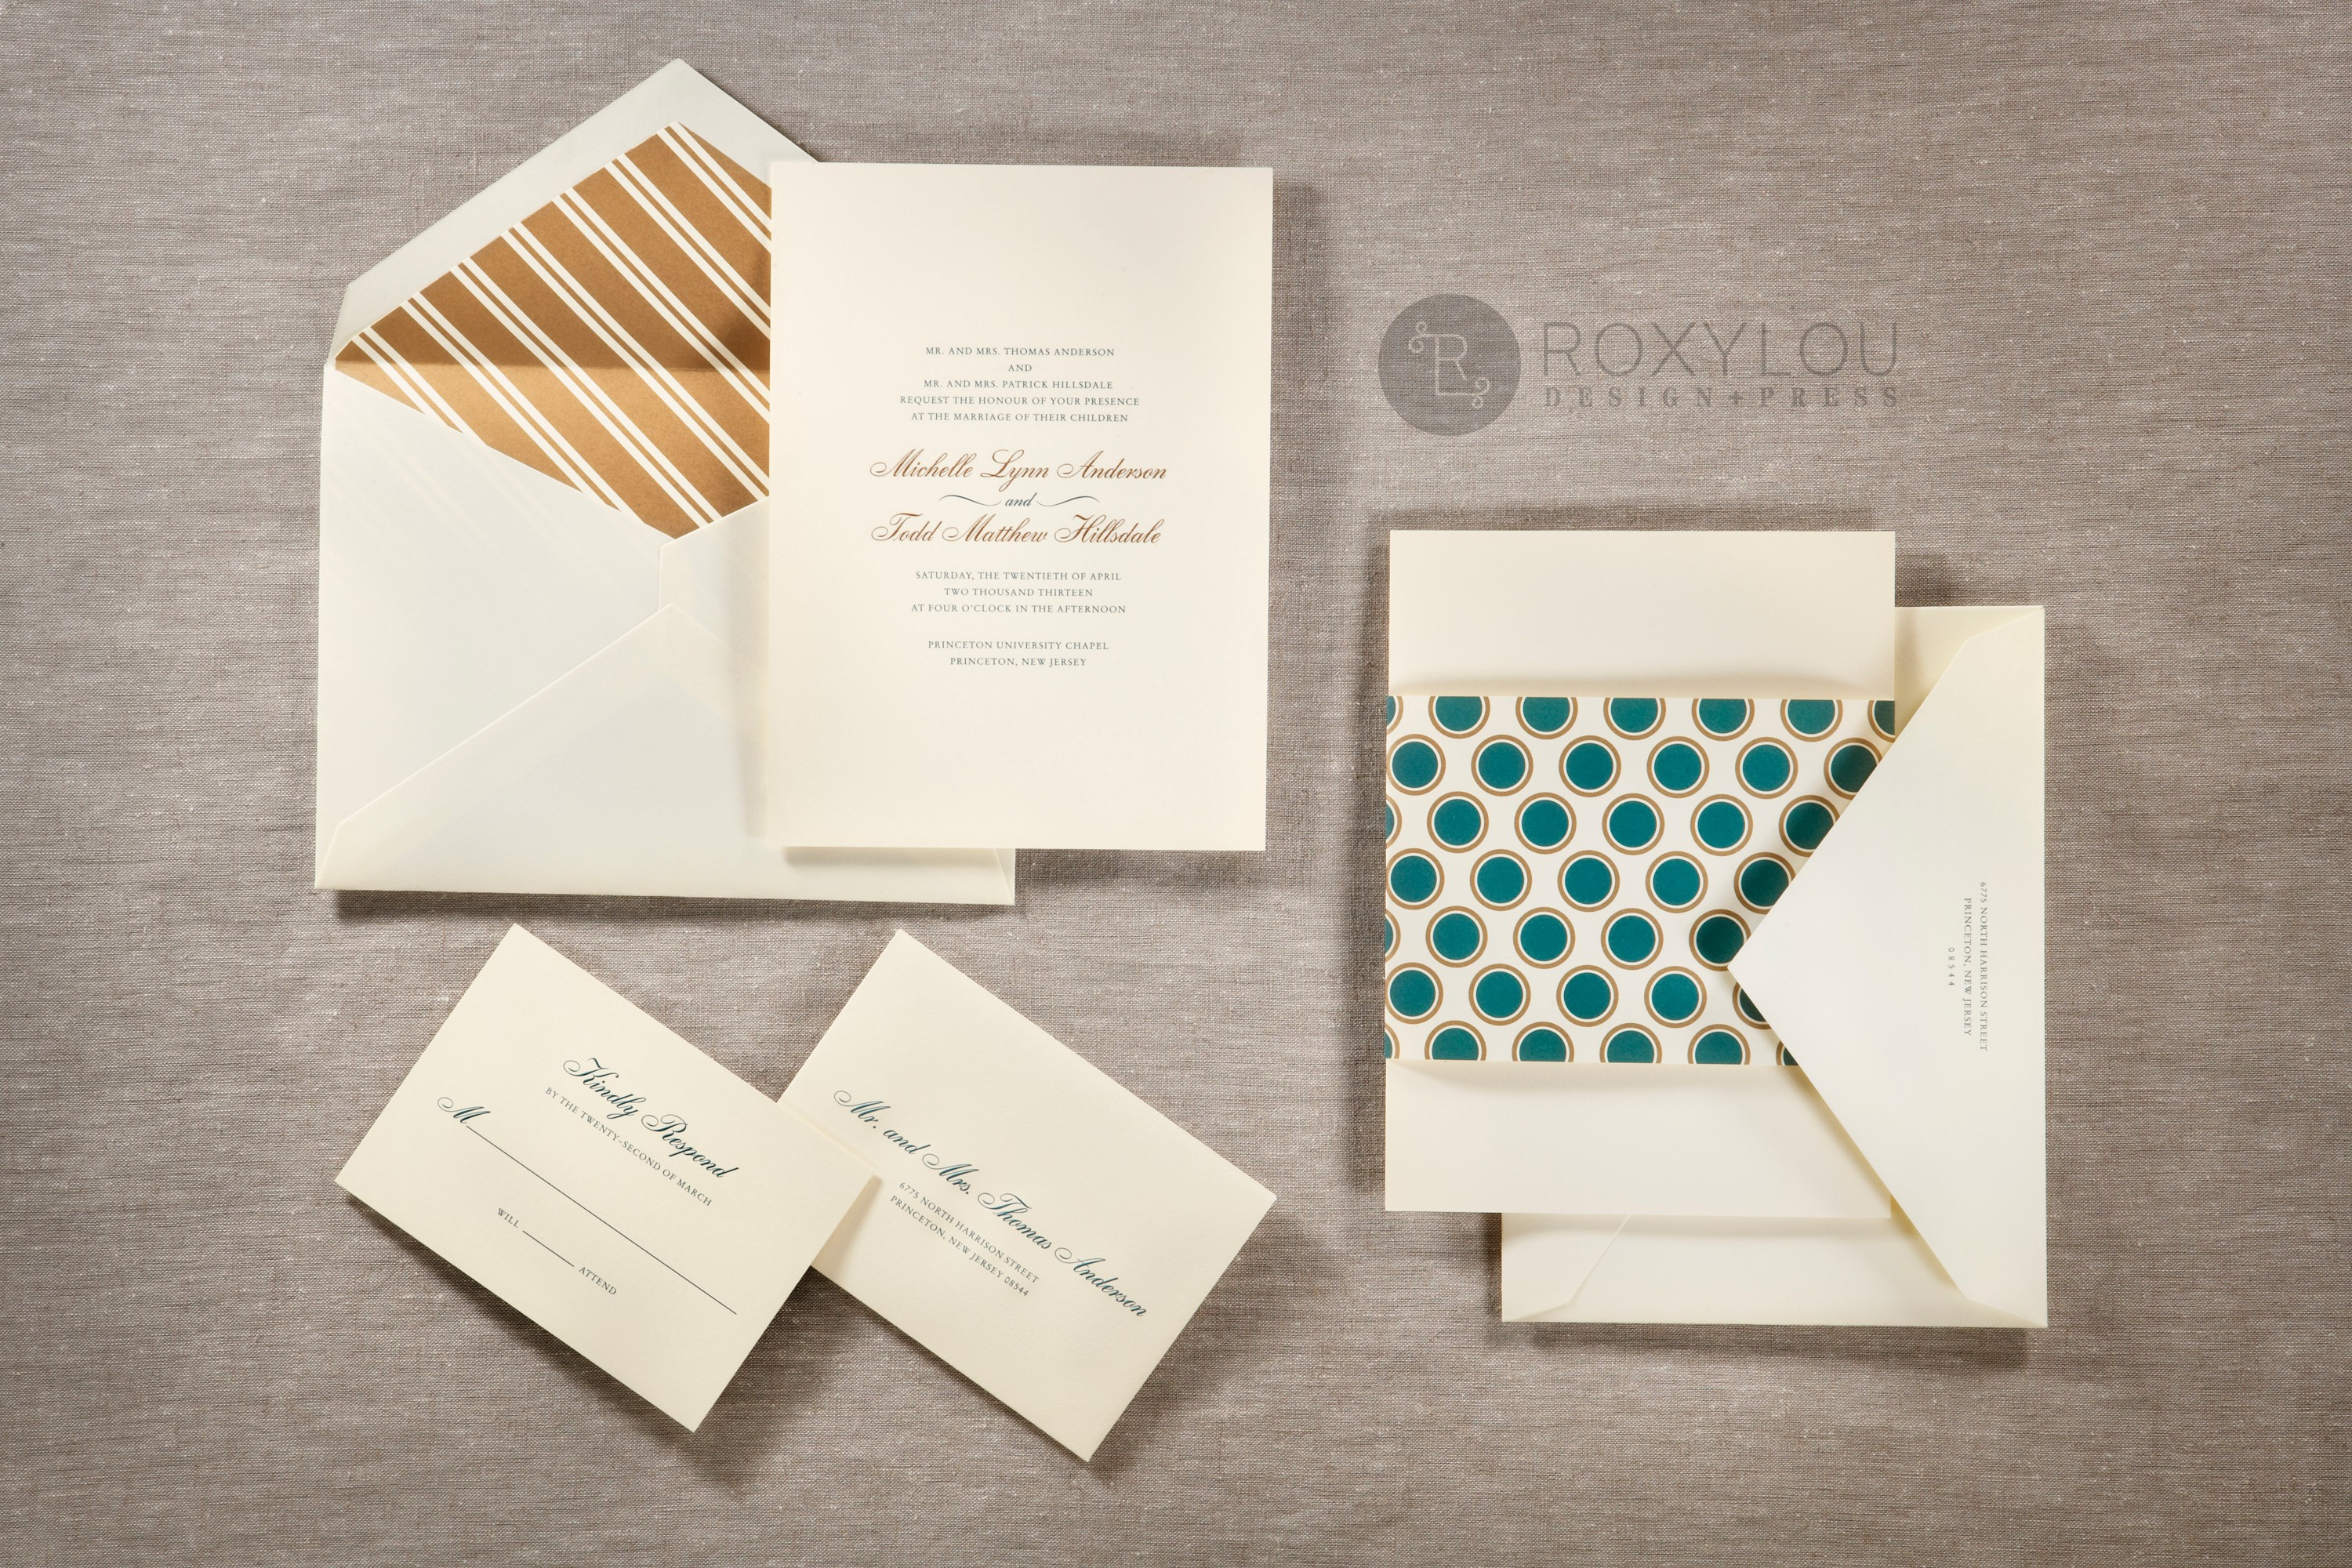 The Hampton invitation suite features a traditionally formal 2-color engraved invitation card with a dotted wrap, engraved outer envelope,  and a beautiful stripe-lined inner envelope.  Stunning in turquoise and gold on ecru paper, but we'd love to customize this invitation's colors to coordinate with your own wedding.